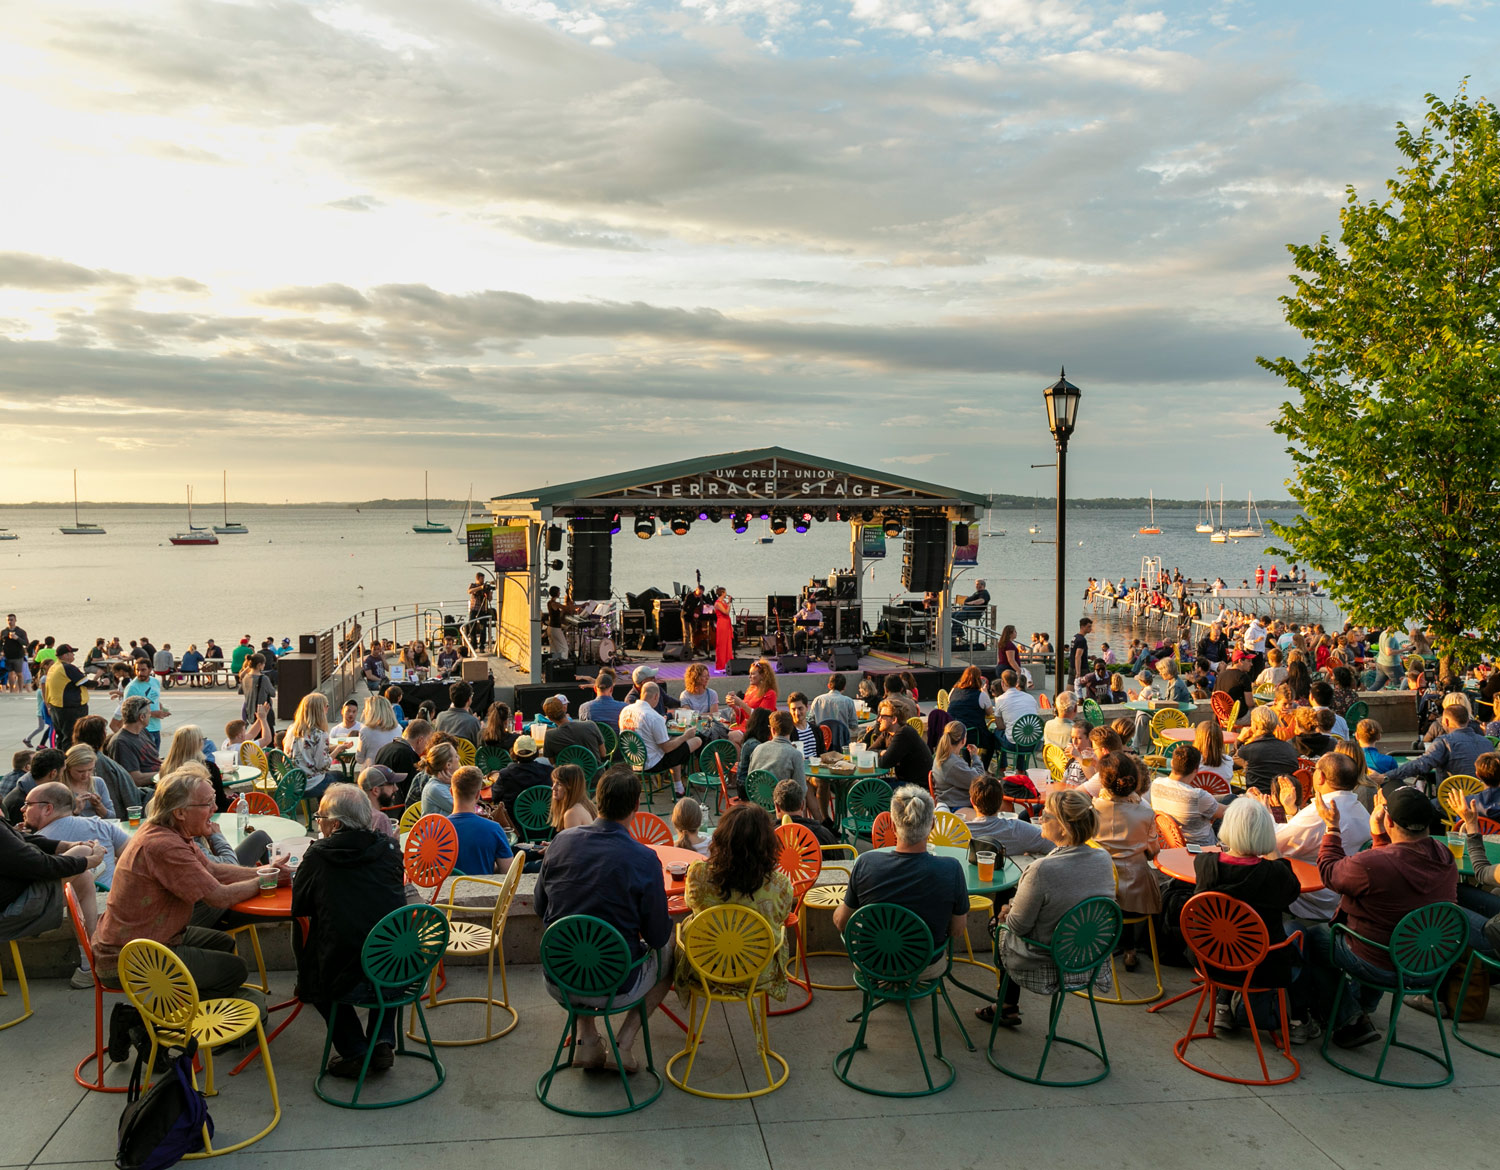 Memorial Union Terrace for live music and spectacular views of the sun setting over Lake Mendota - Sober City Guide of Madison, Wisconsin